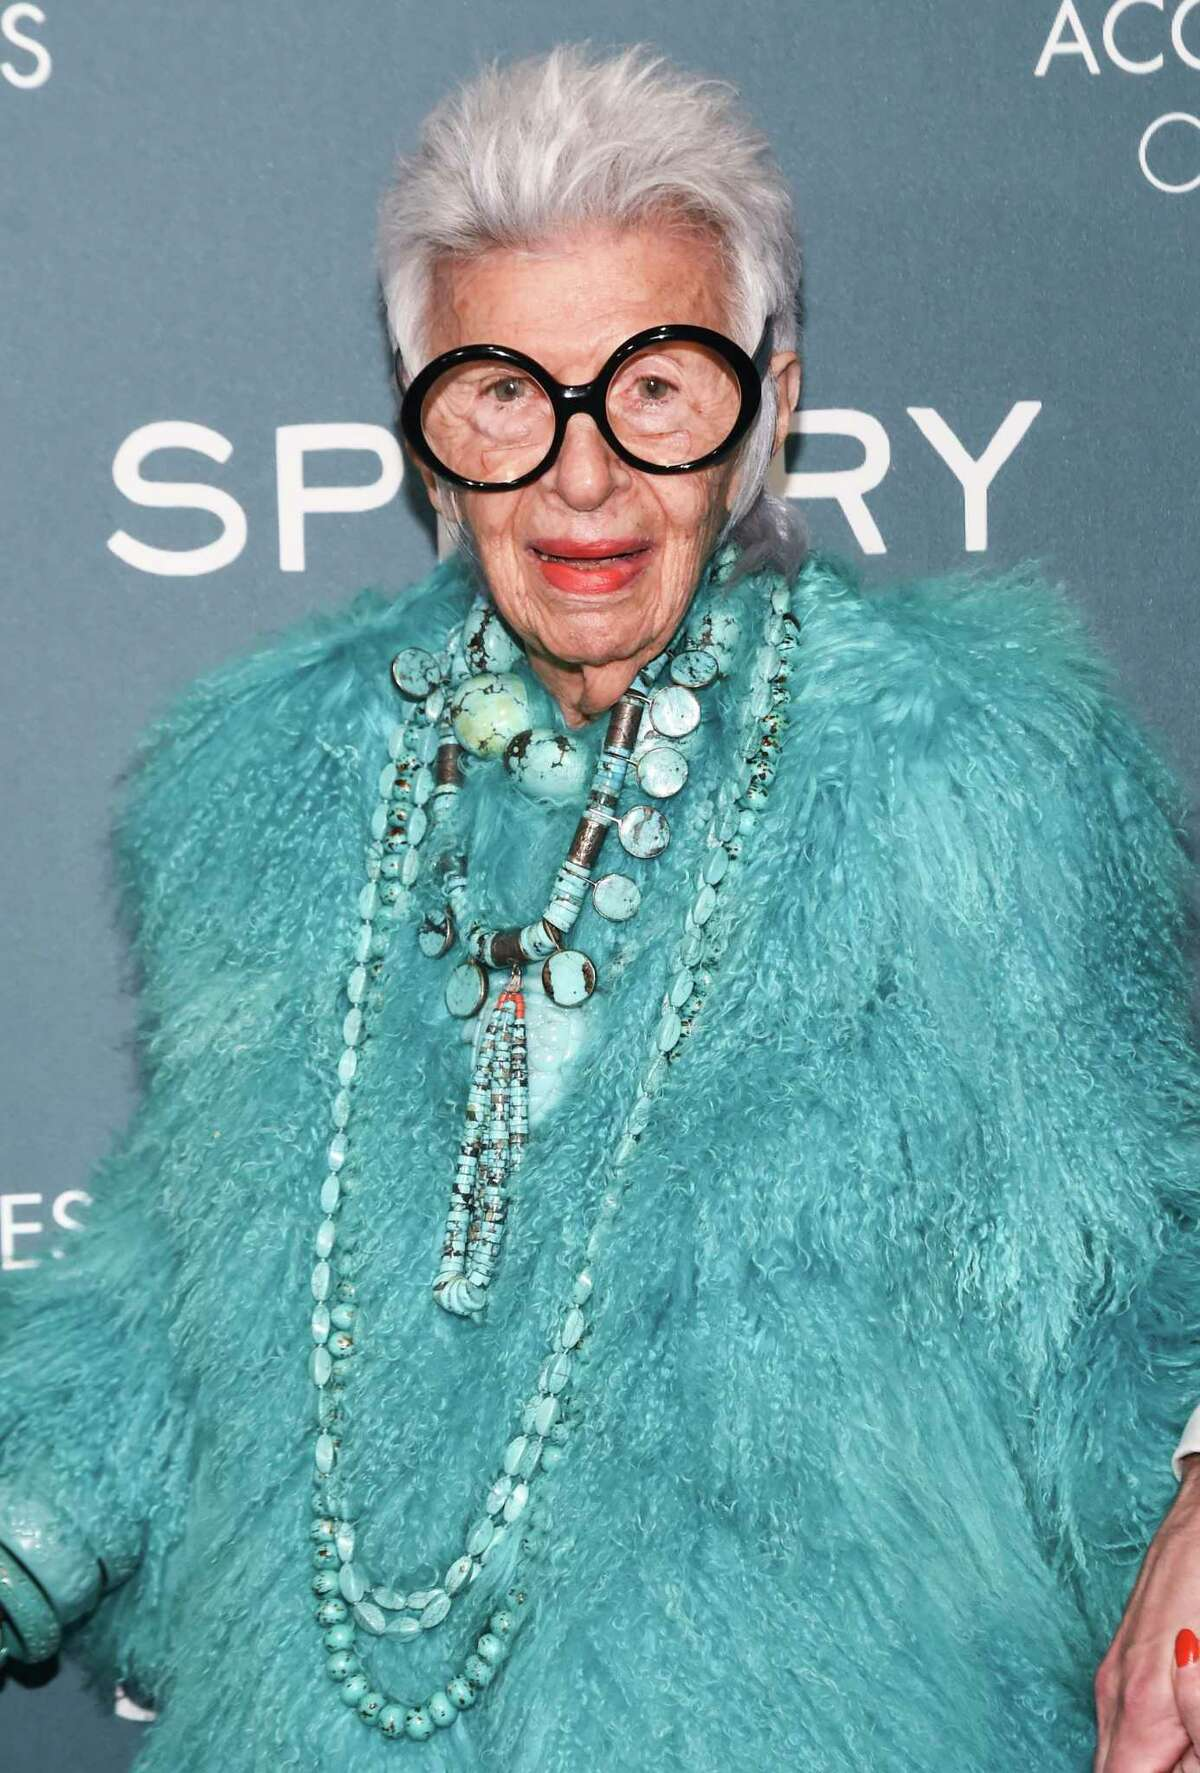 Iris Apfel attends the 22nd Annual Accessories Council ACE Awards in 2018 in New York City.